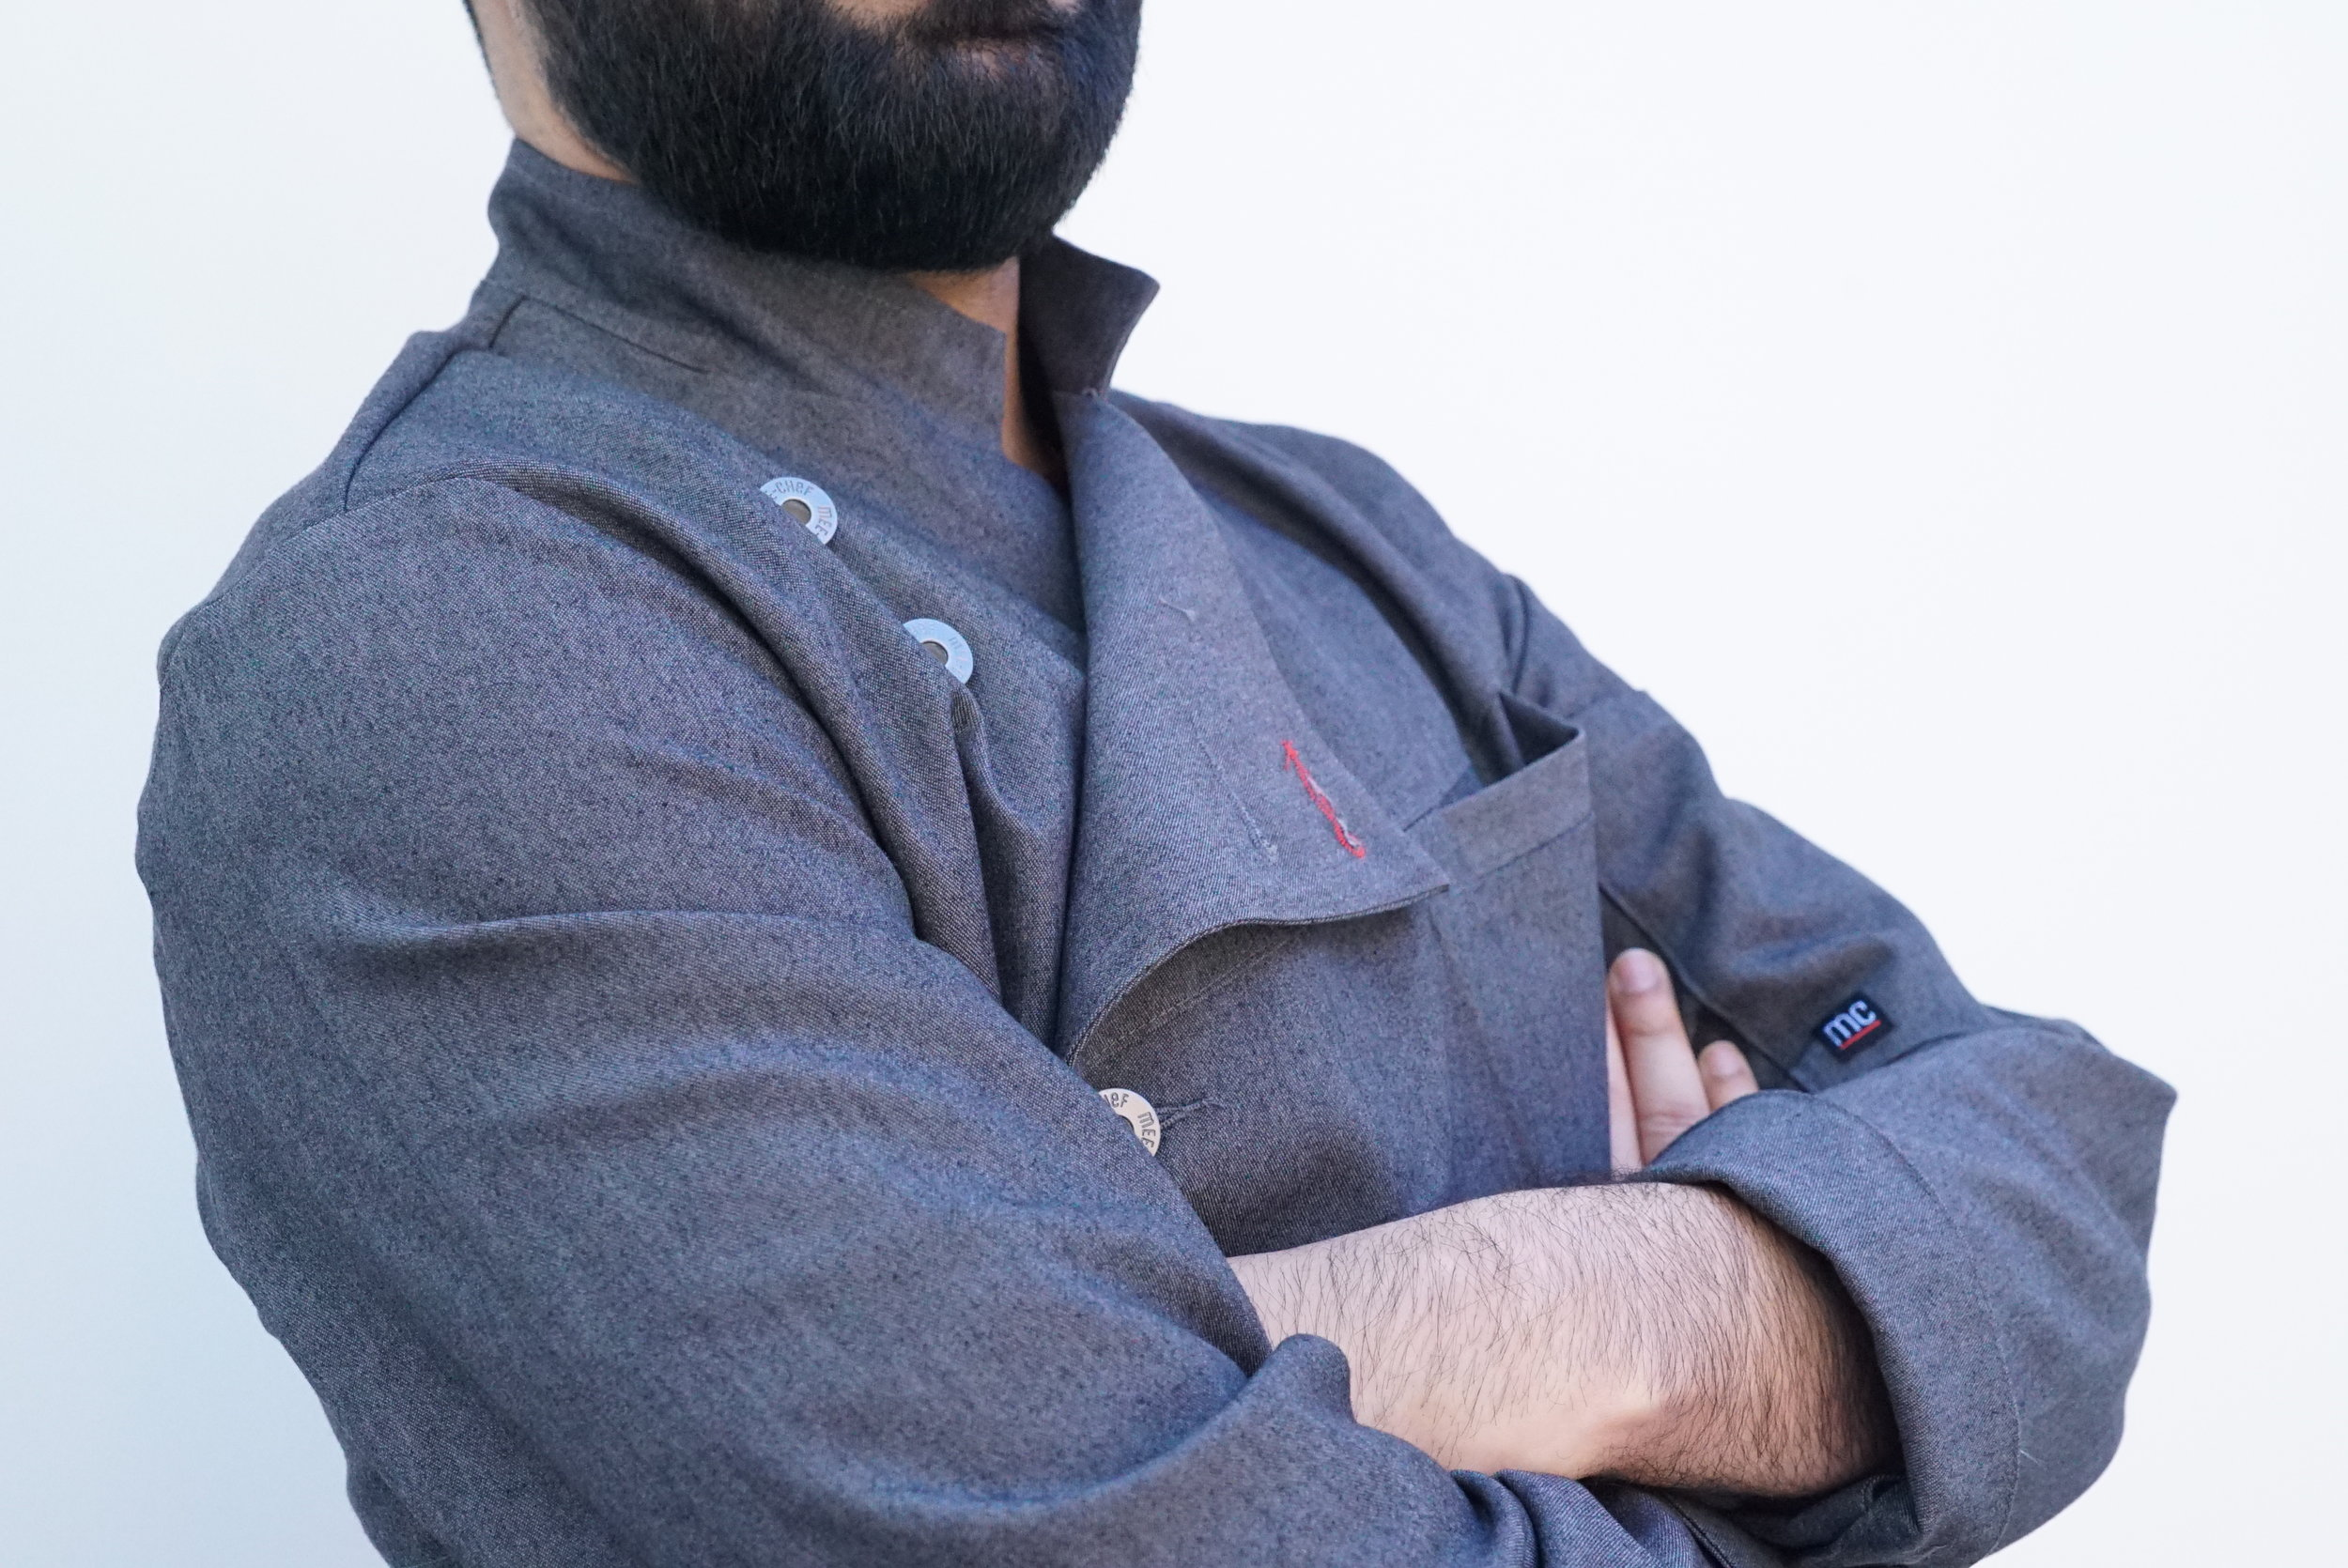 CLAREMONT Jacket - Innovative design, Enhanced fabrics.It's time for a change.